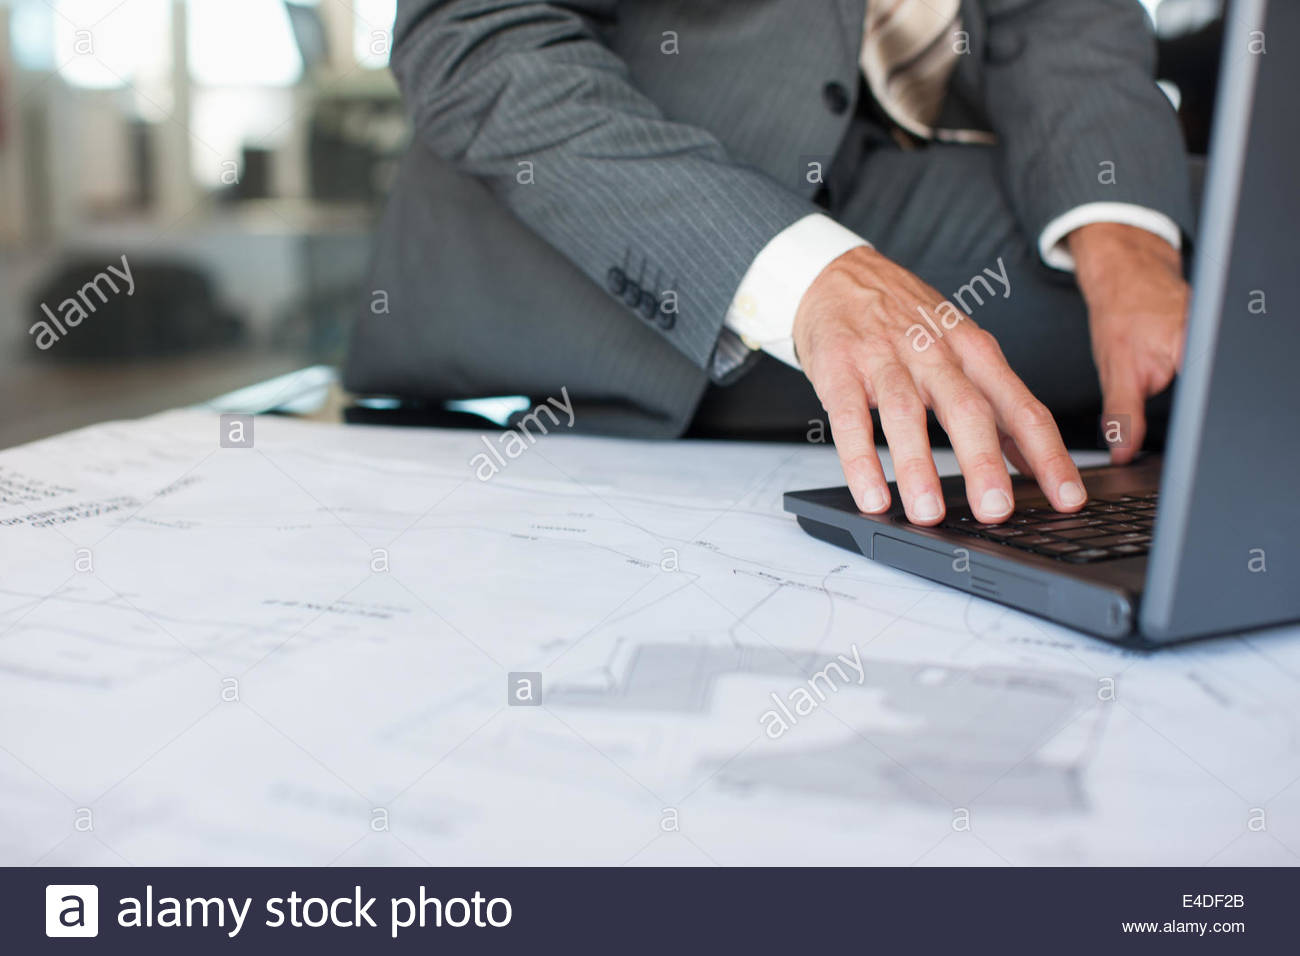 Businessman using laptop with blueprints in office - Stock Image